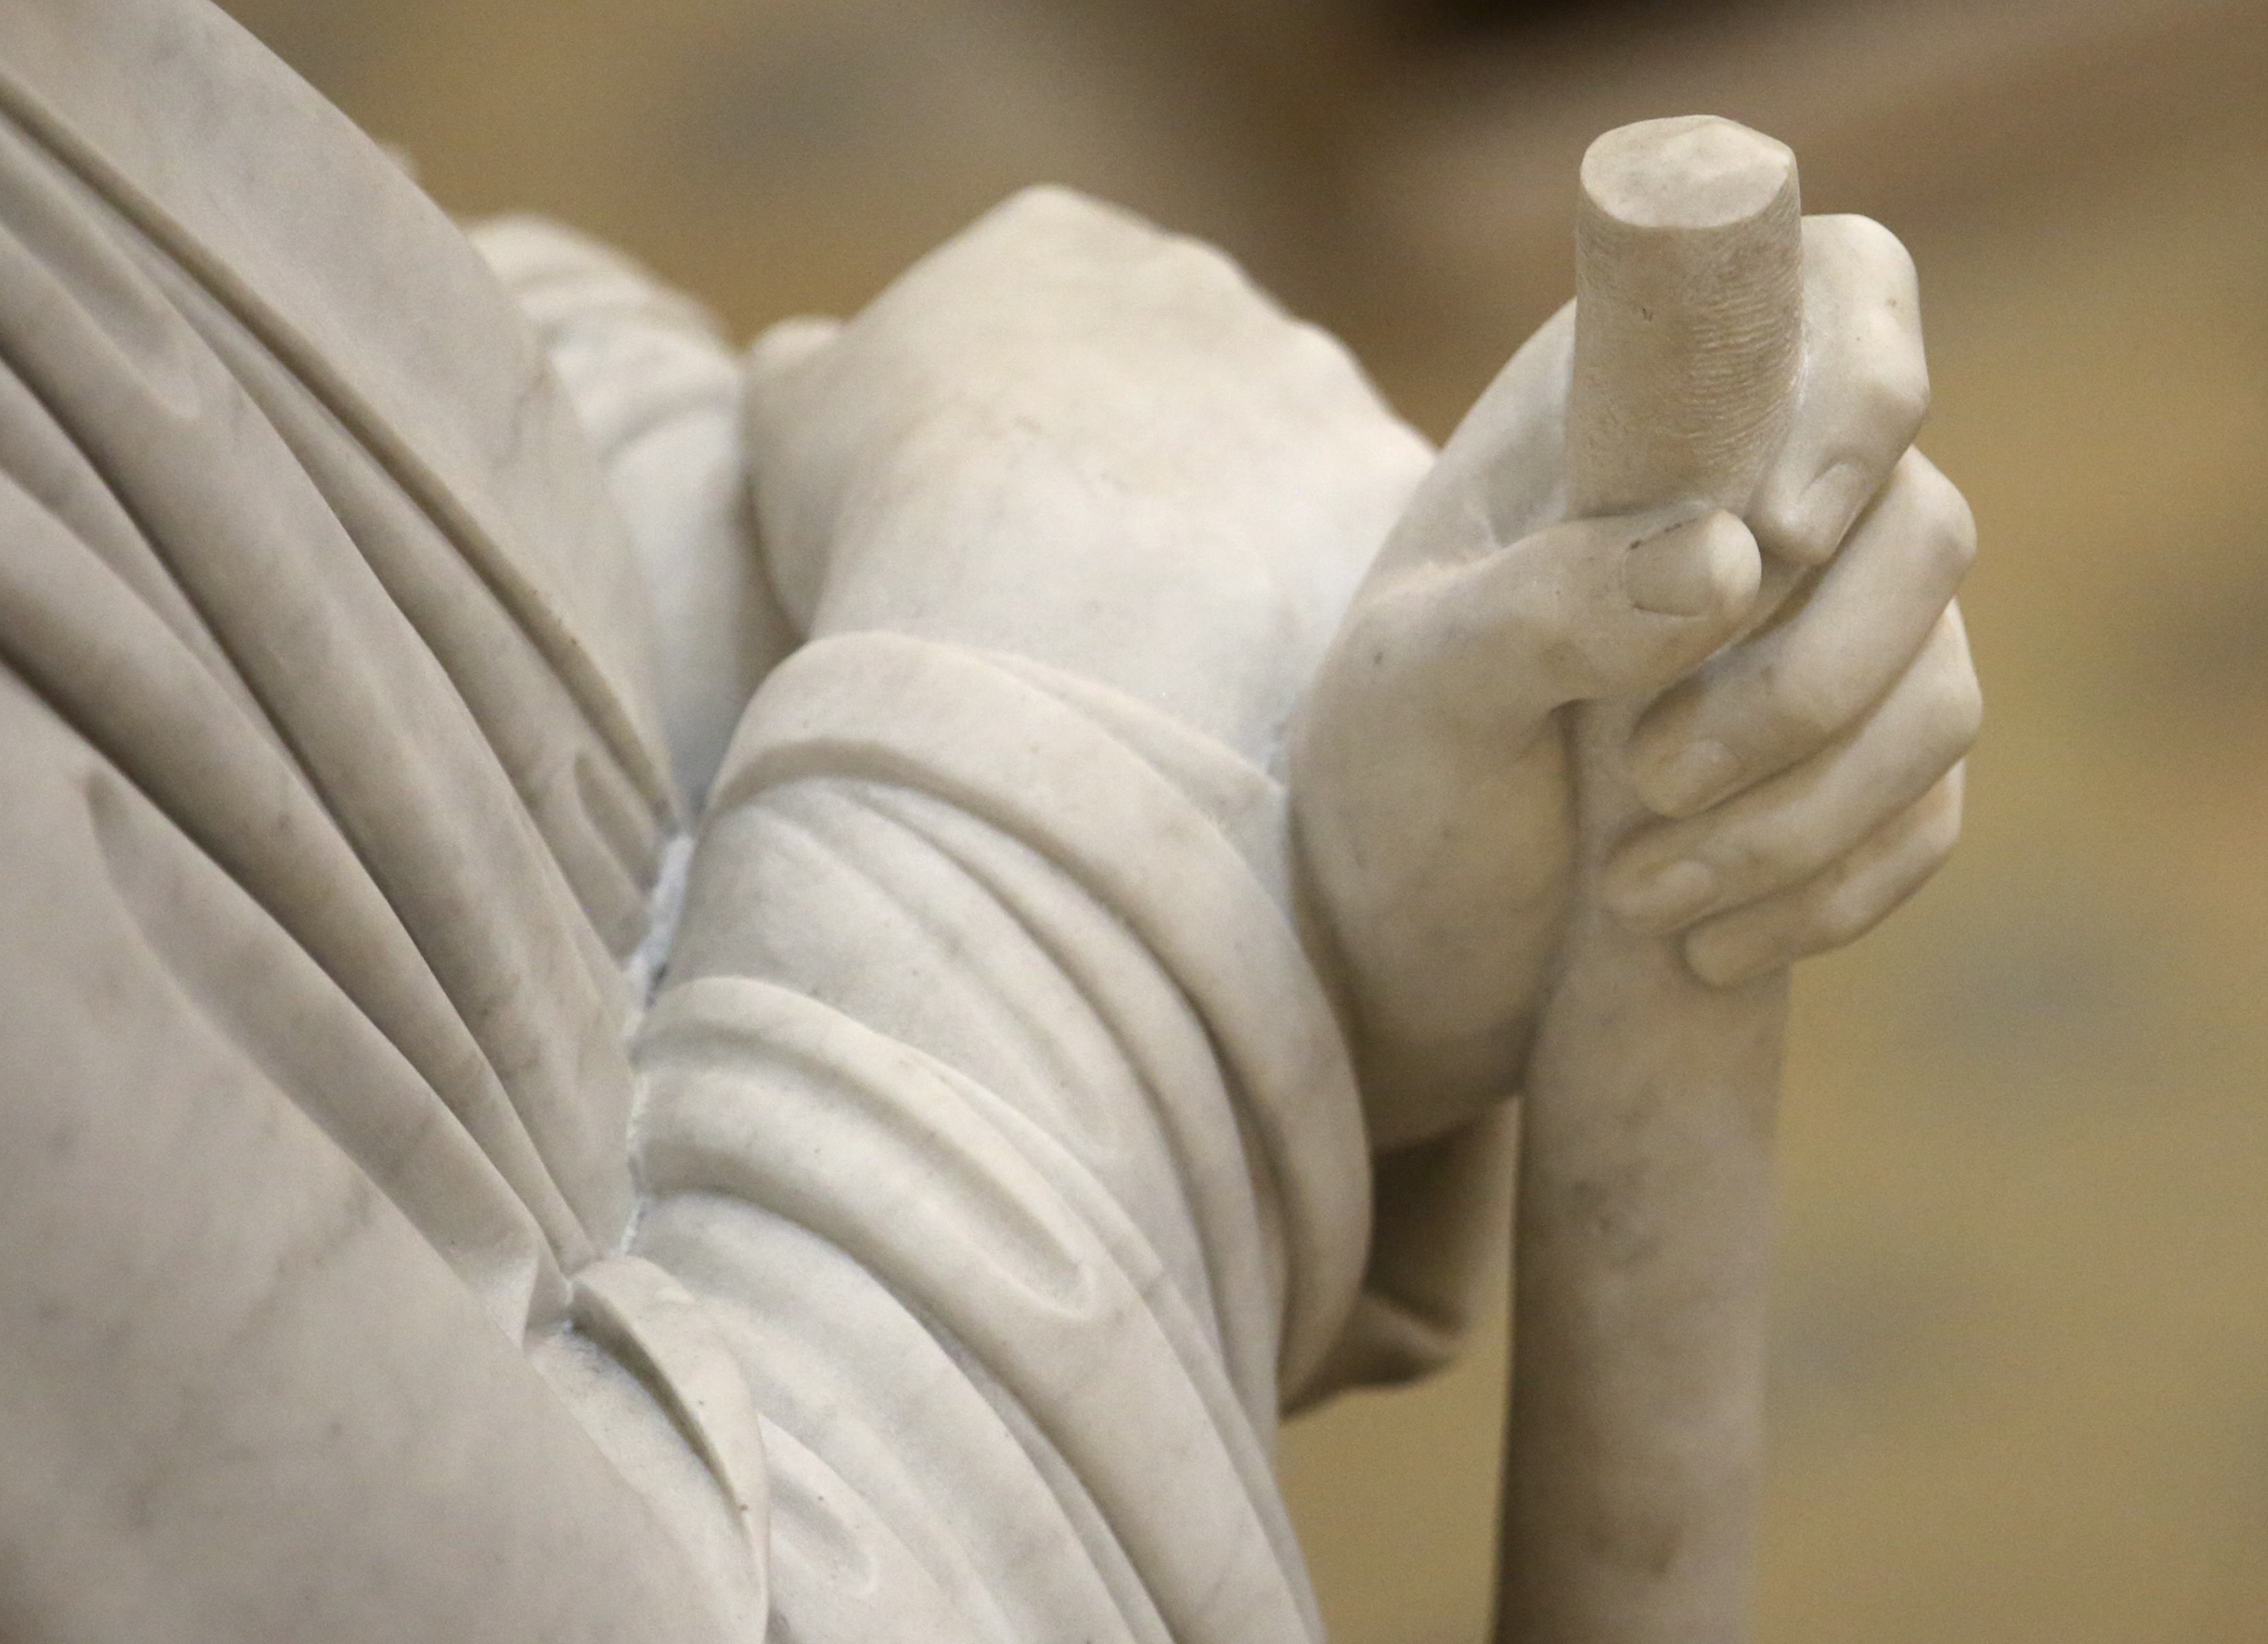 Bertel Thorvaldsen's James, the son of Alpheus, holds a staff at the Church of Our Lady in Copenhagen, Denmark, on Tuesday, Nov. 13, 2018. The 12 apostles statues were carved out of Carrara marble between 1829 and 1848. Replicas of the statues are now on display in the Rome Temple Visitors' Center in Italy.